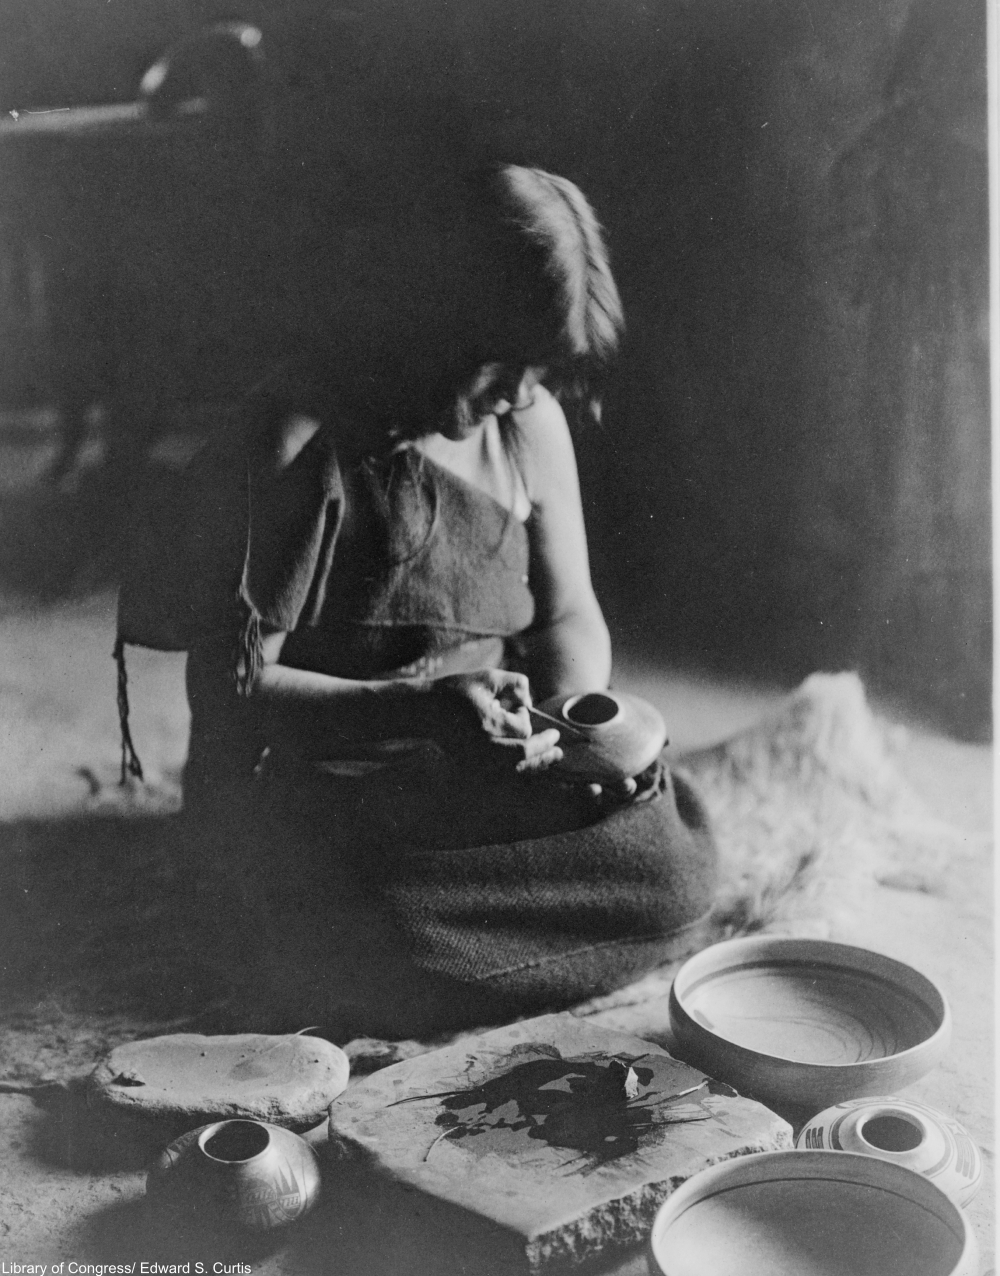 applying pigment to the pots, circa 1906